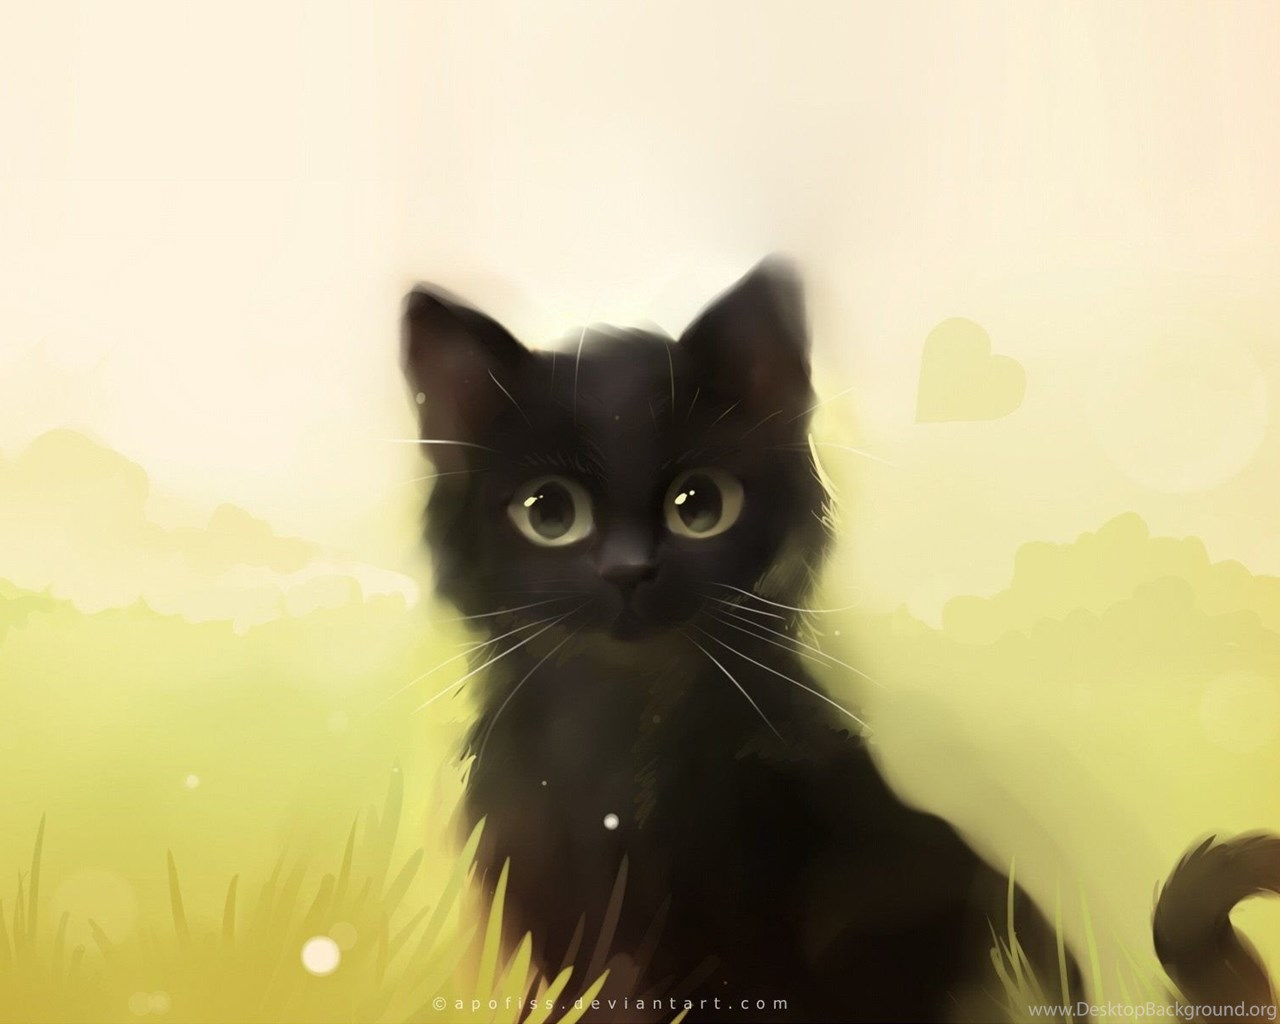 Beautiful cat painting wallpapers hd download of cute cat - Anime cat wallpaper ...